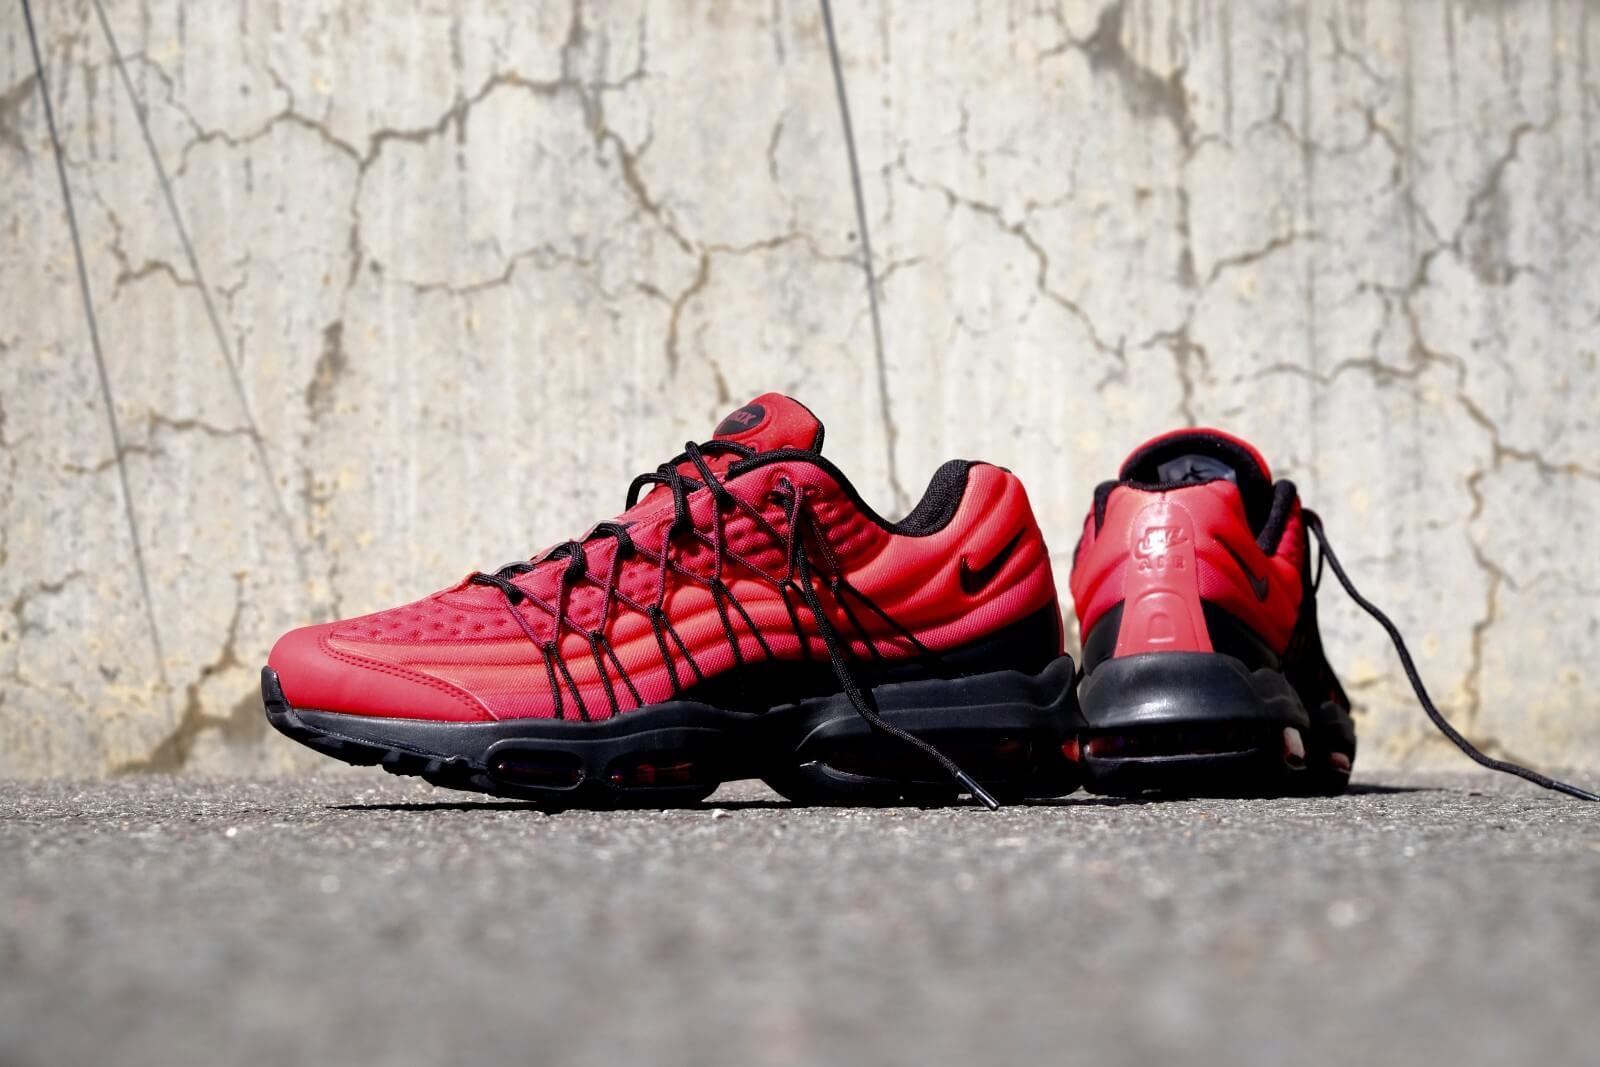 check out 3fba3 c7398 Nike Air Max 95 Ultra Se Gym Red leoncamier.co.uk